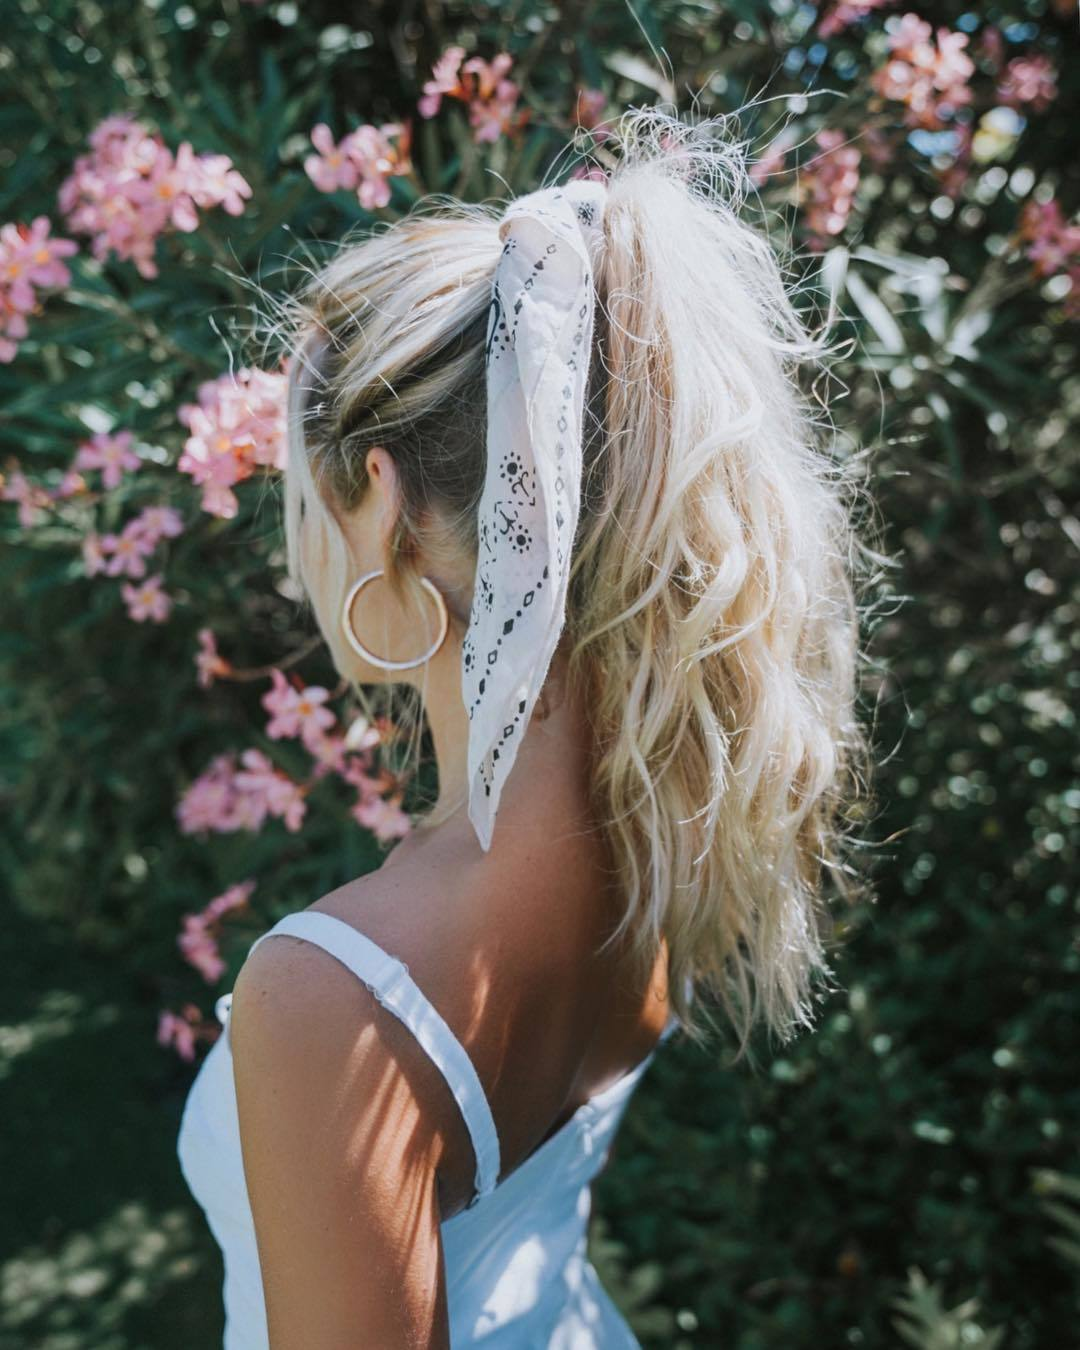 Bandana hairstyles: Woman with long bleach blonde messy hair styled into a high ponytail with a bandana tied around it, posing against flowers